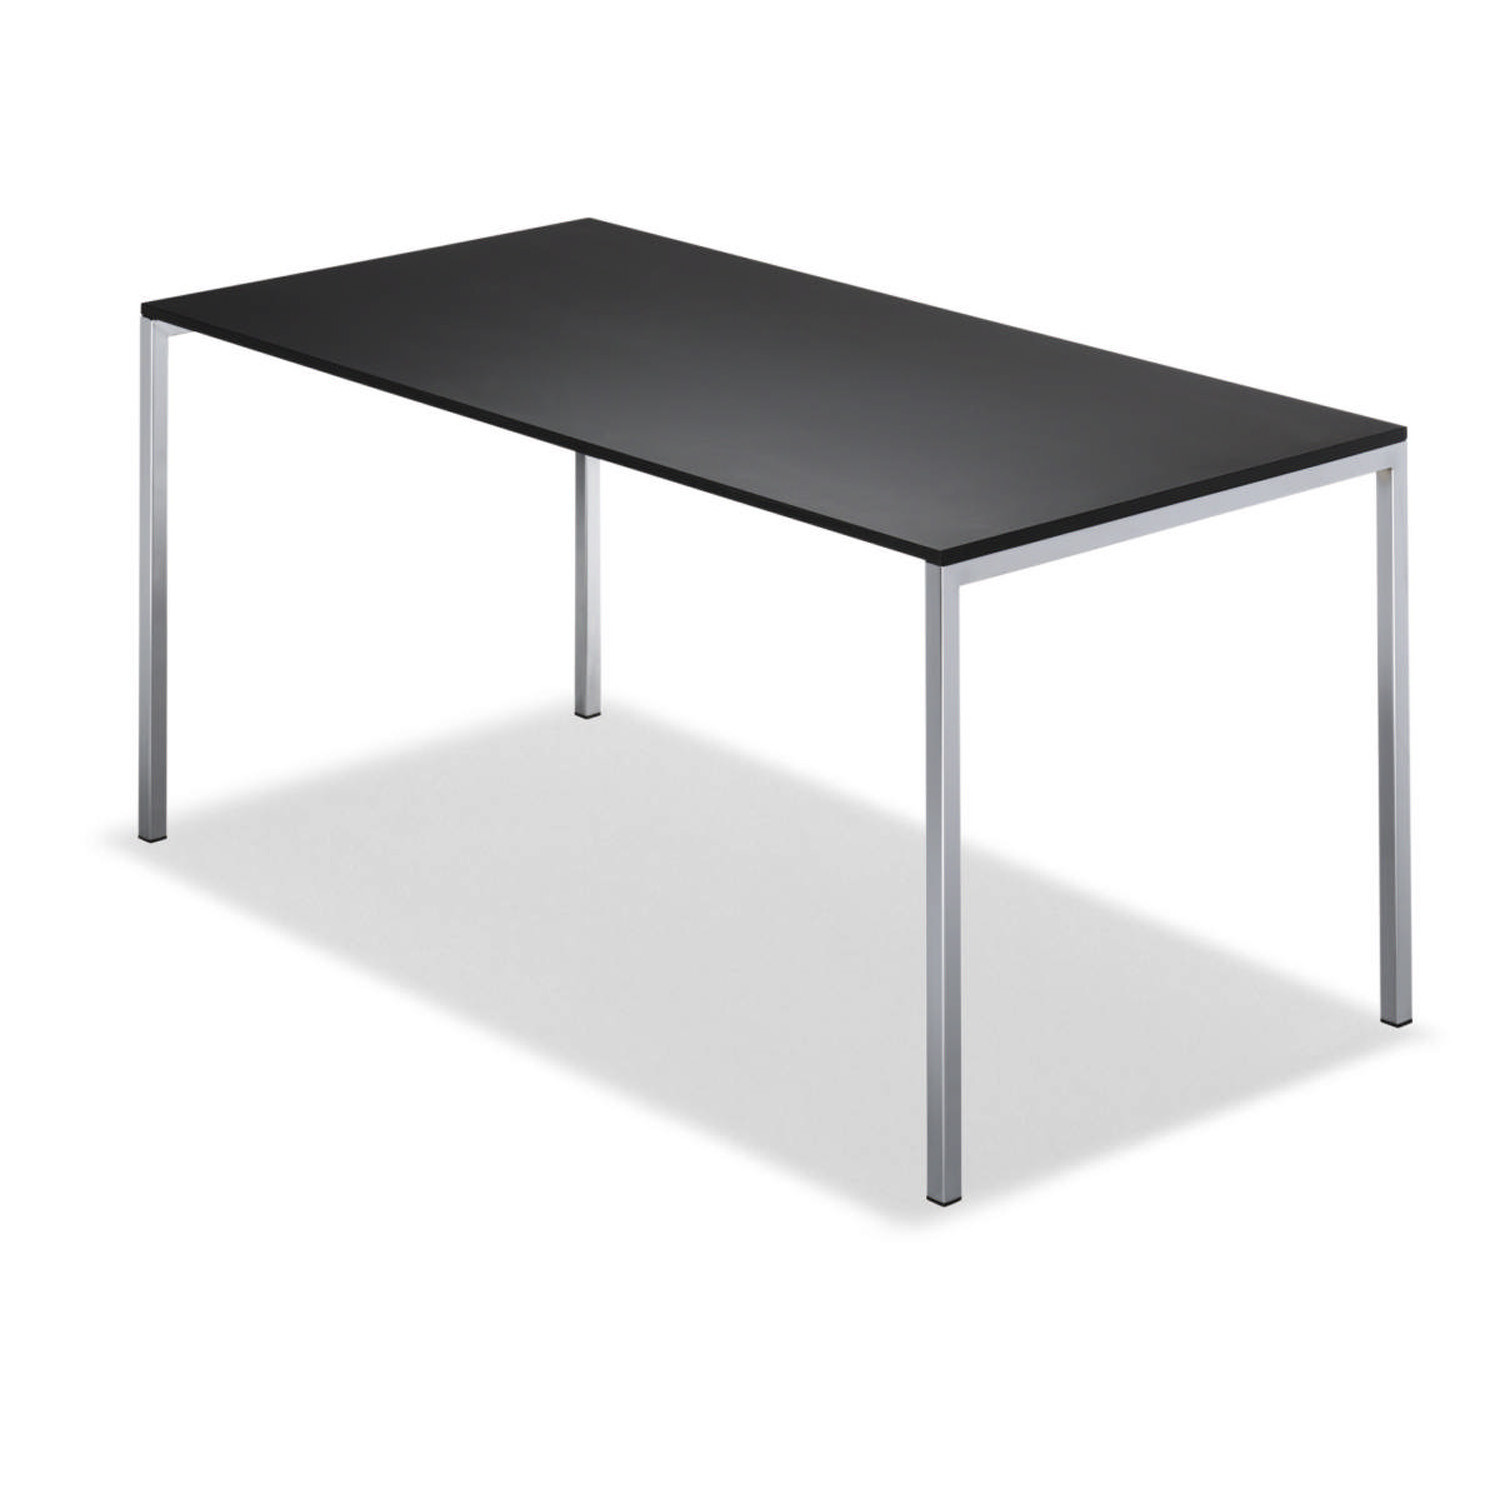 MilanoClassic Rectangular Table